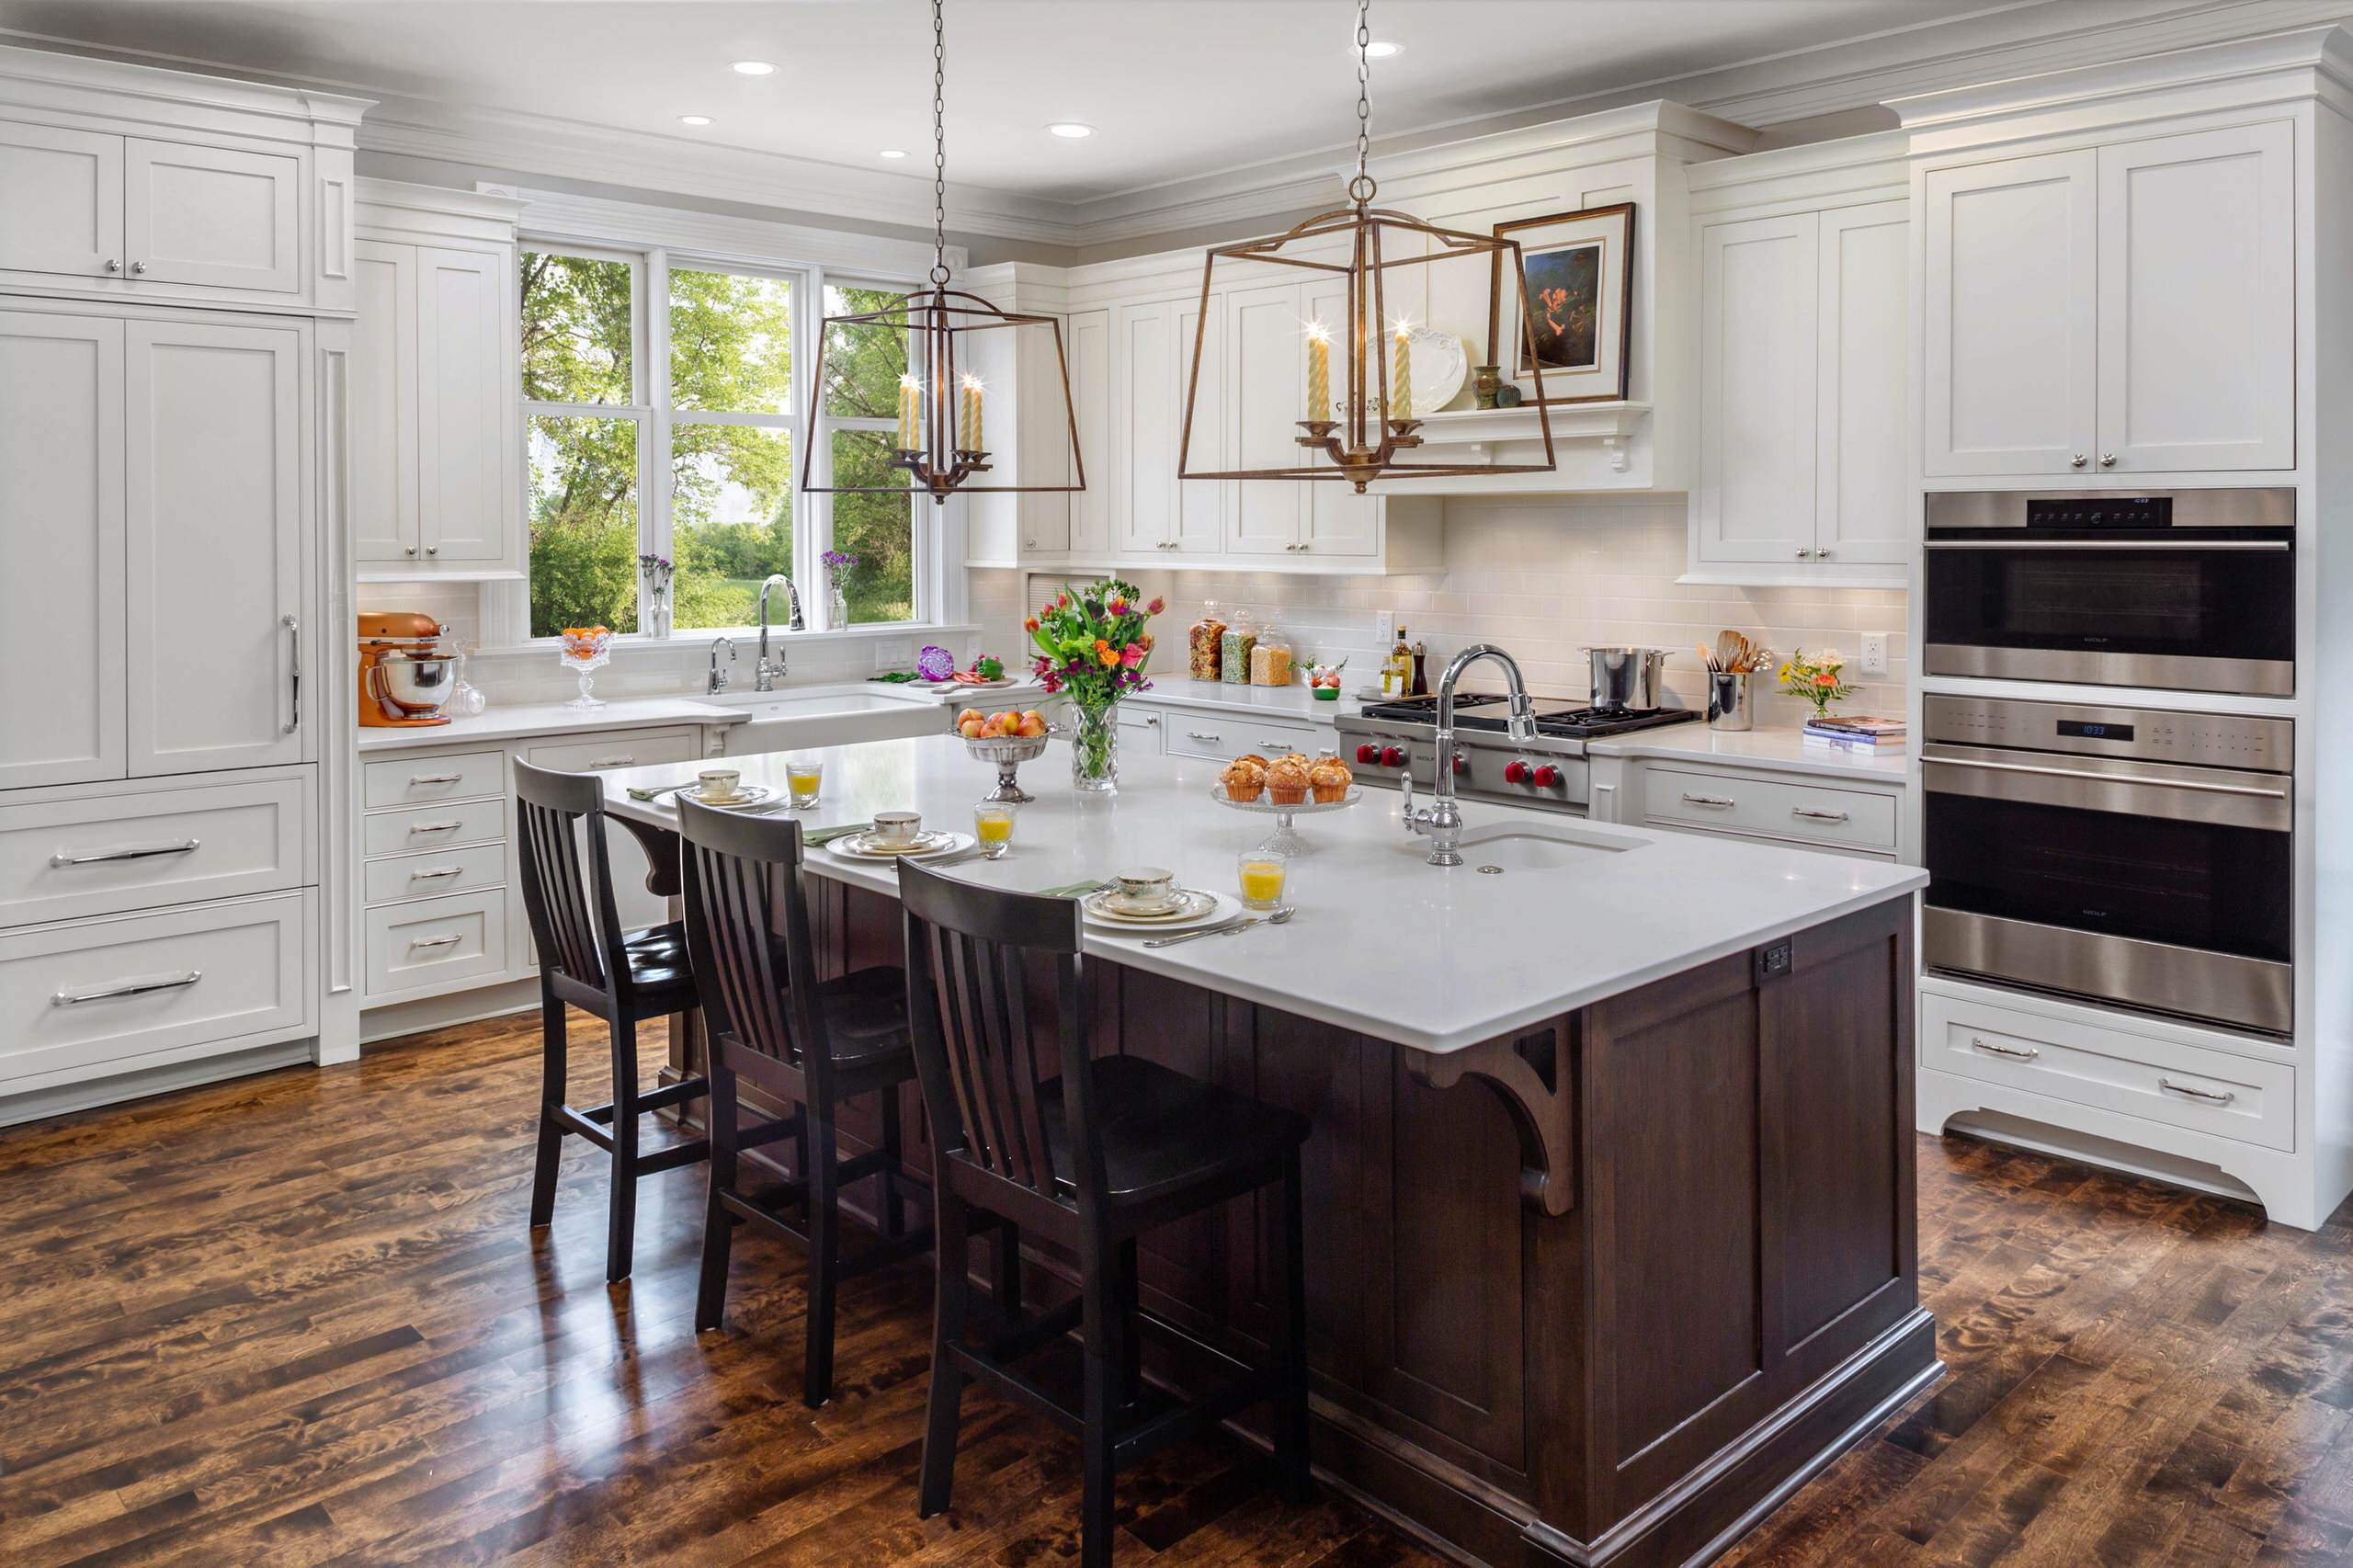 75 Beautiful Traditional Kitchen With An Island Pictures Ideas November 2020 Houzz